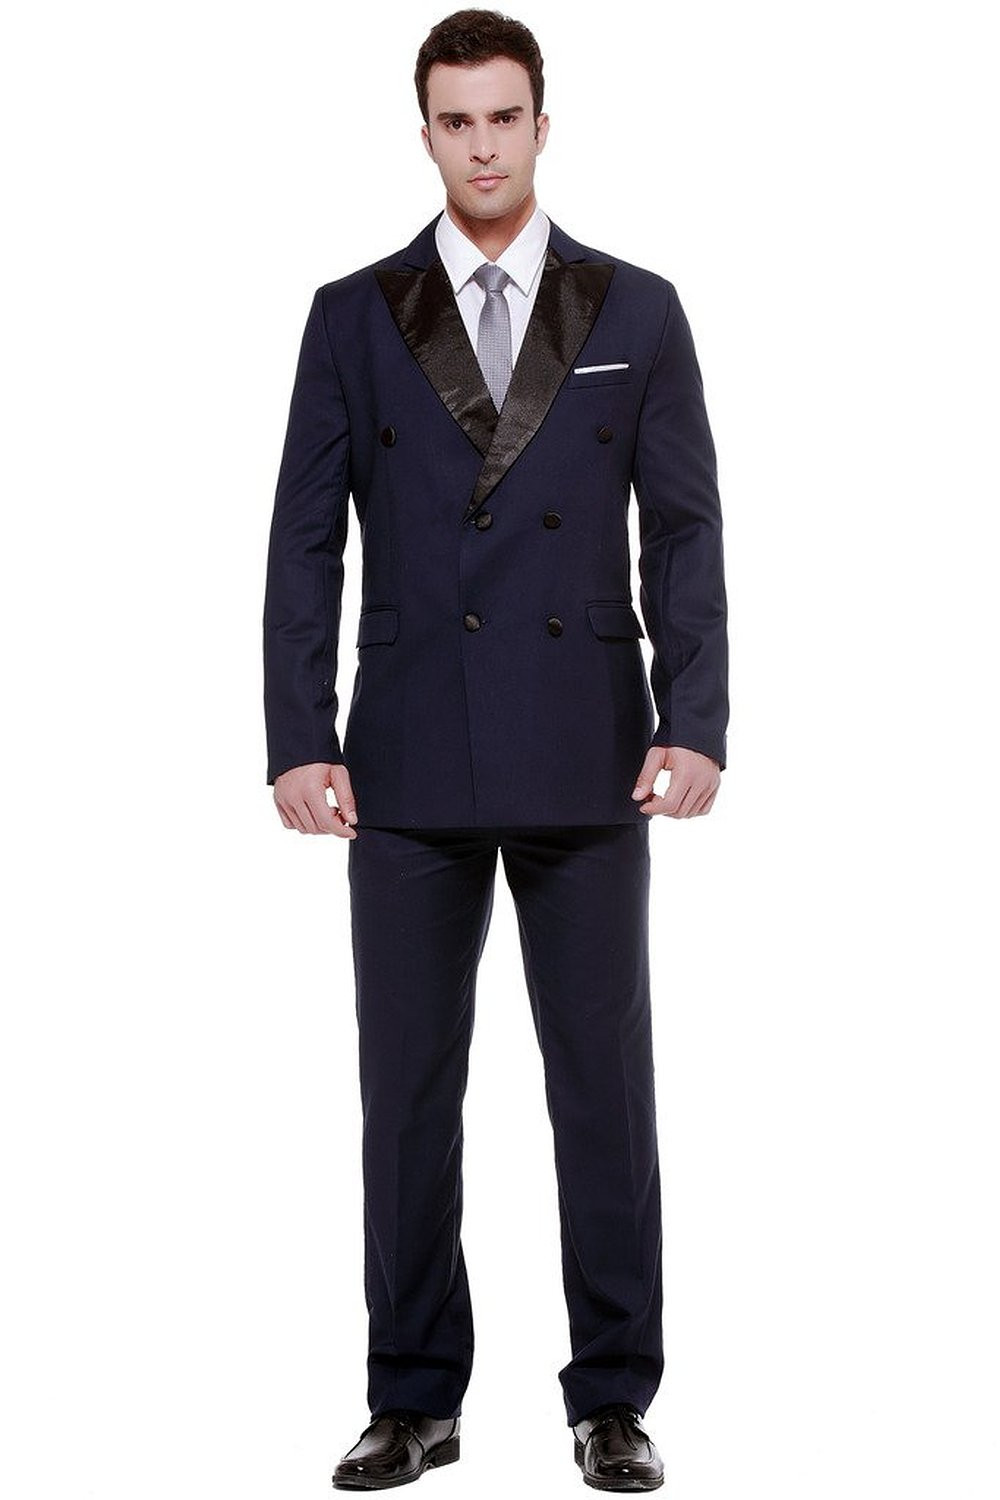 Compare Prices on Mens Slim Fit Double Breasted Suit- Online ...